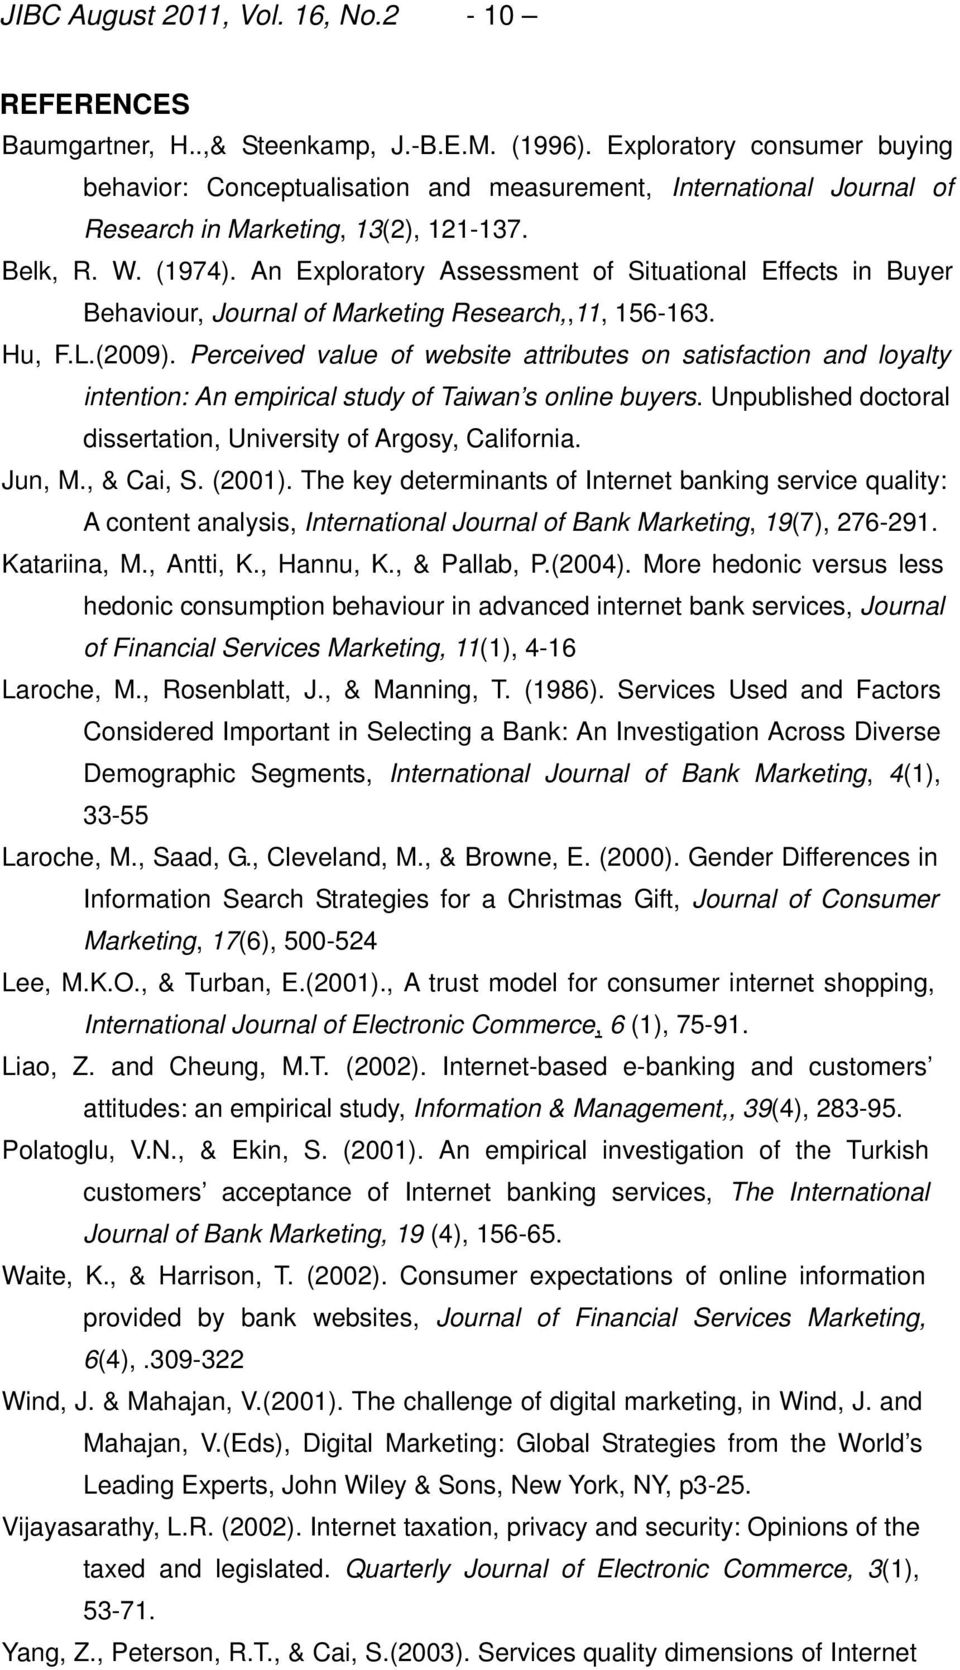 An Exploratory Assessment of Situational Effects in Buyer Behaviour, Journal of Marketing Research,,11, 156-163. Hu, F.L.(2009).